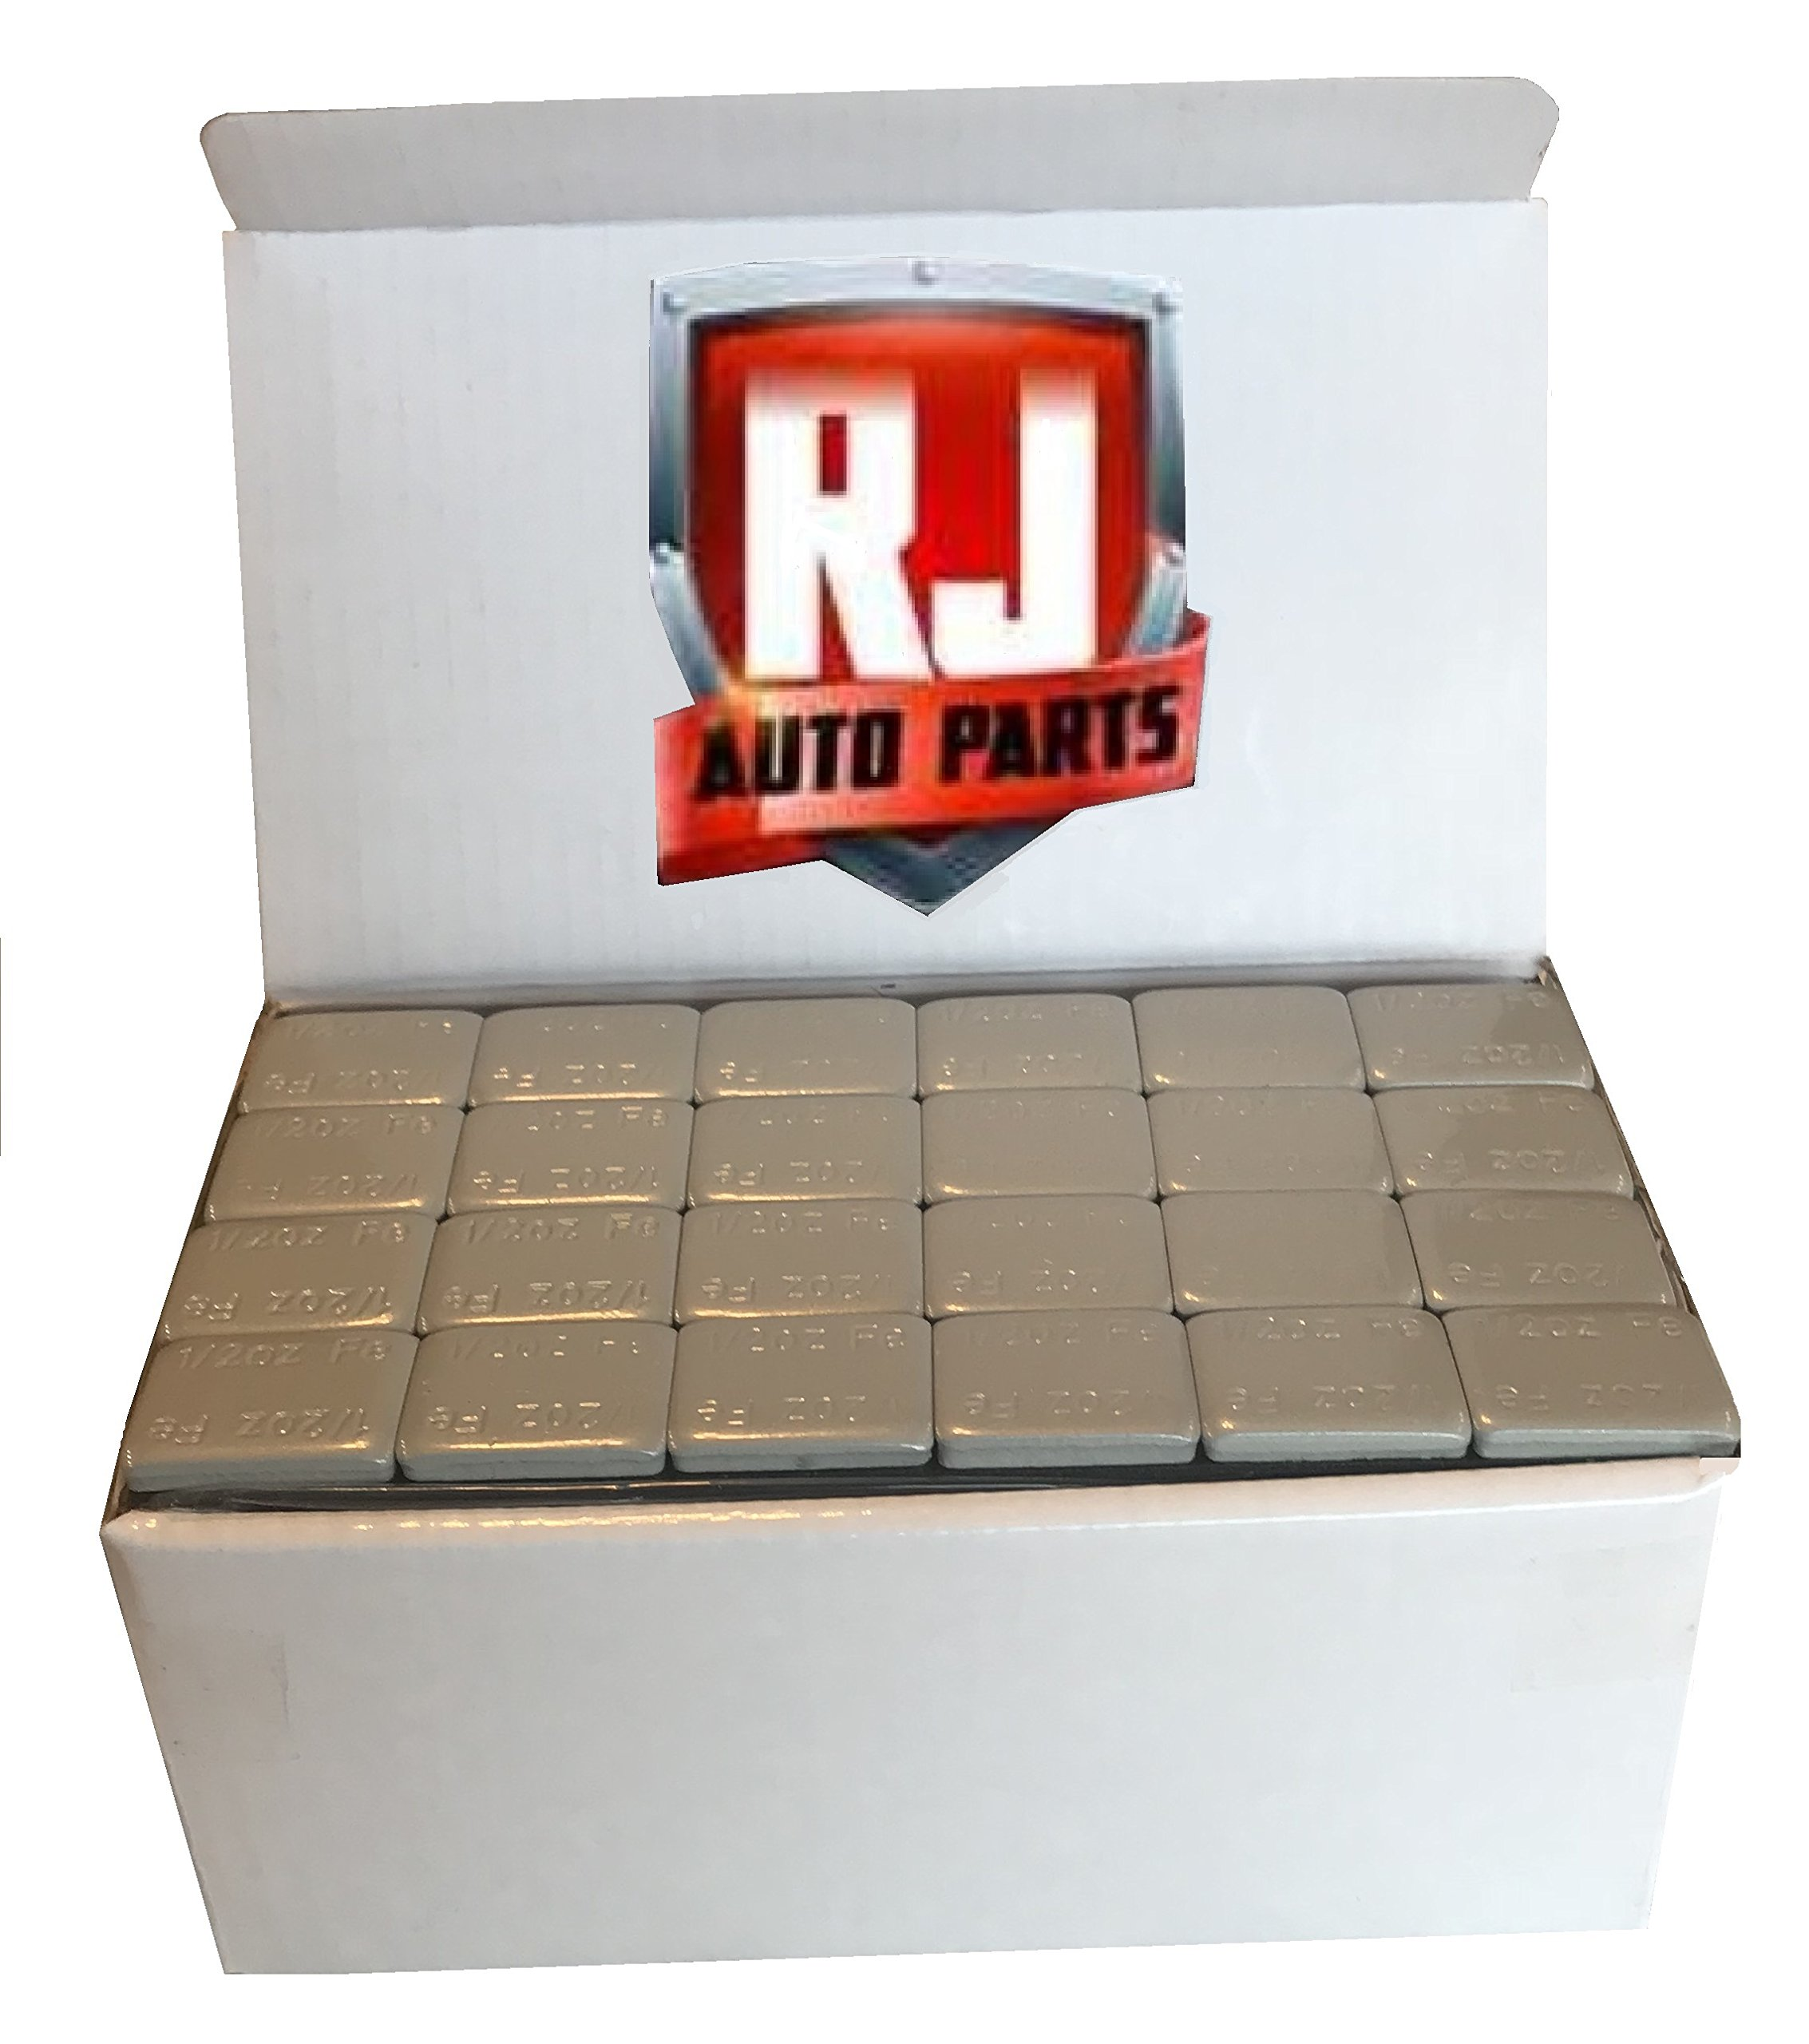 1 Box Wheel Weights, Grey 1/2 oz. Stick-on Adhesive Tape, Lead Free (9 lbs) 288 Pieces by RJ Auto Parts